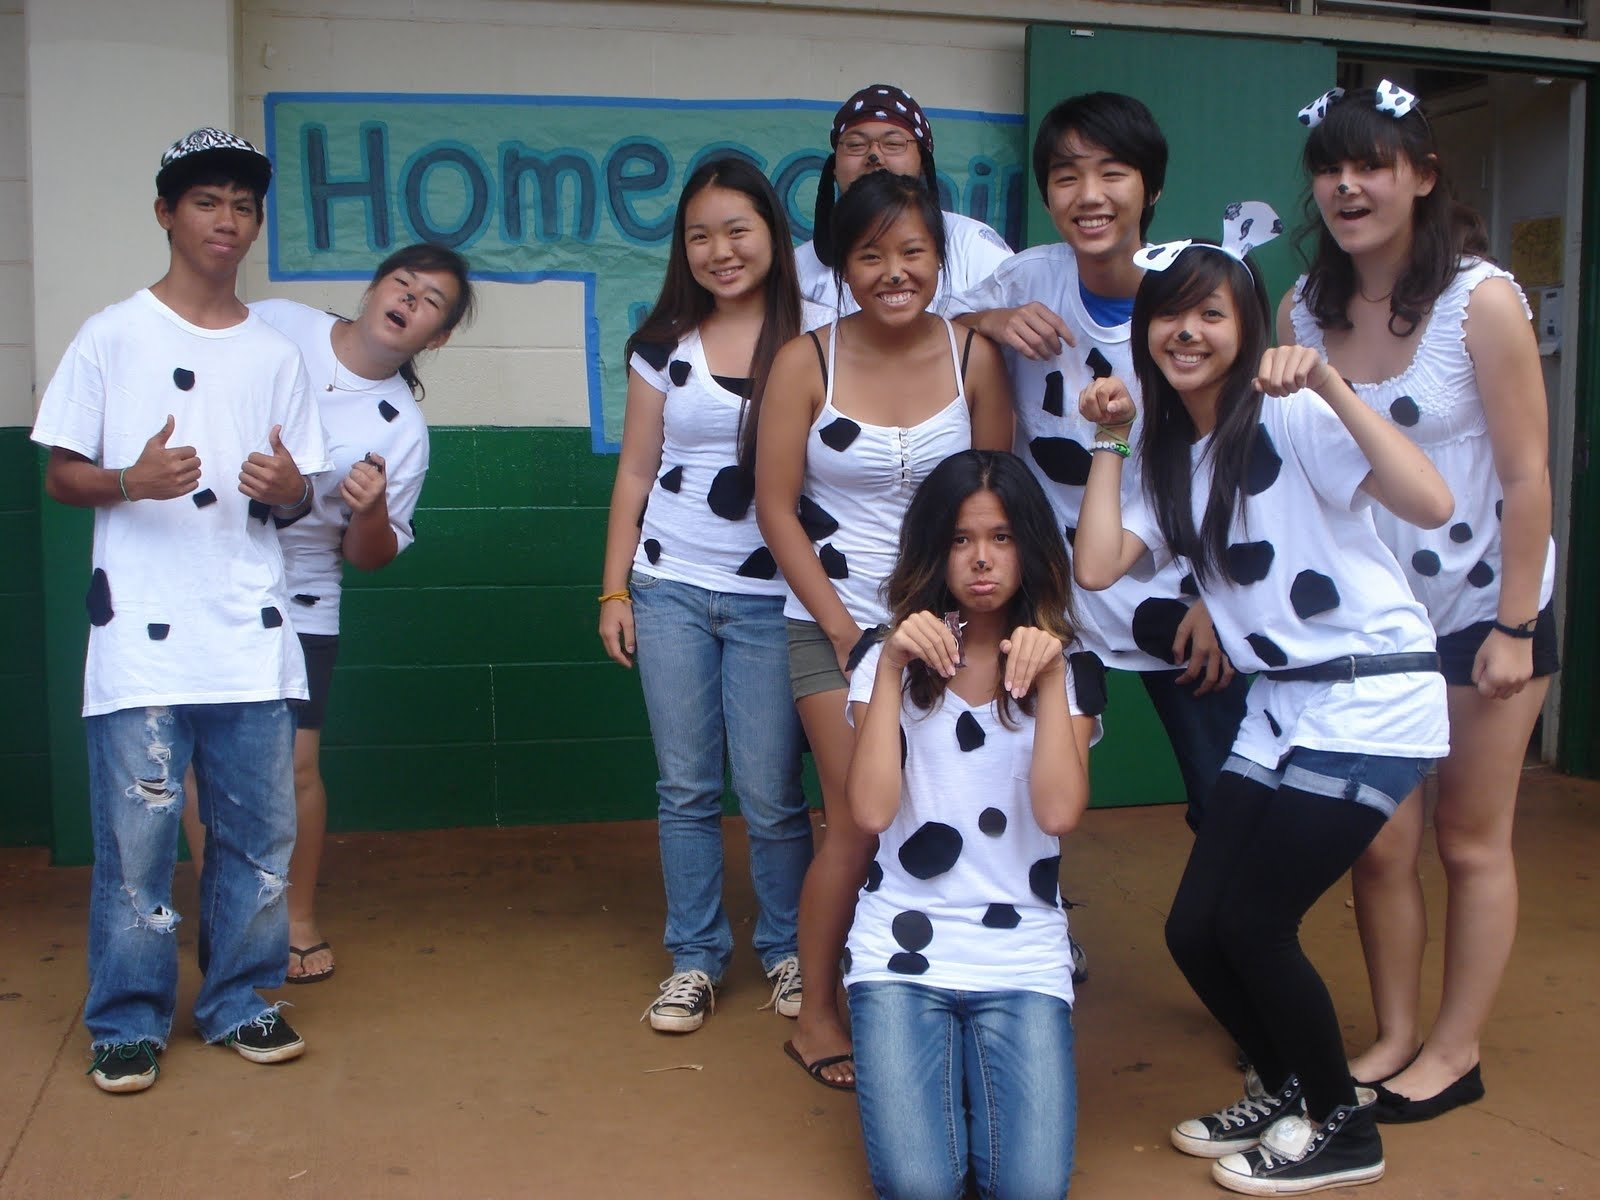 10 Cute Character Day Ideas For Girls aiea high school student activities homecoming week day 4 6 2020